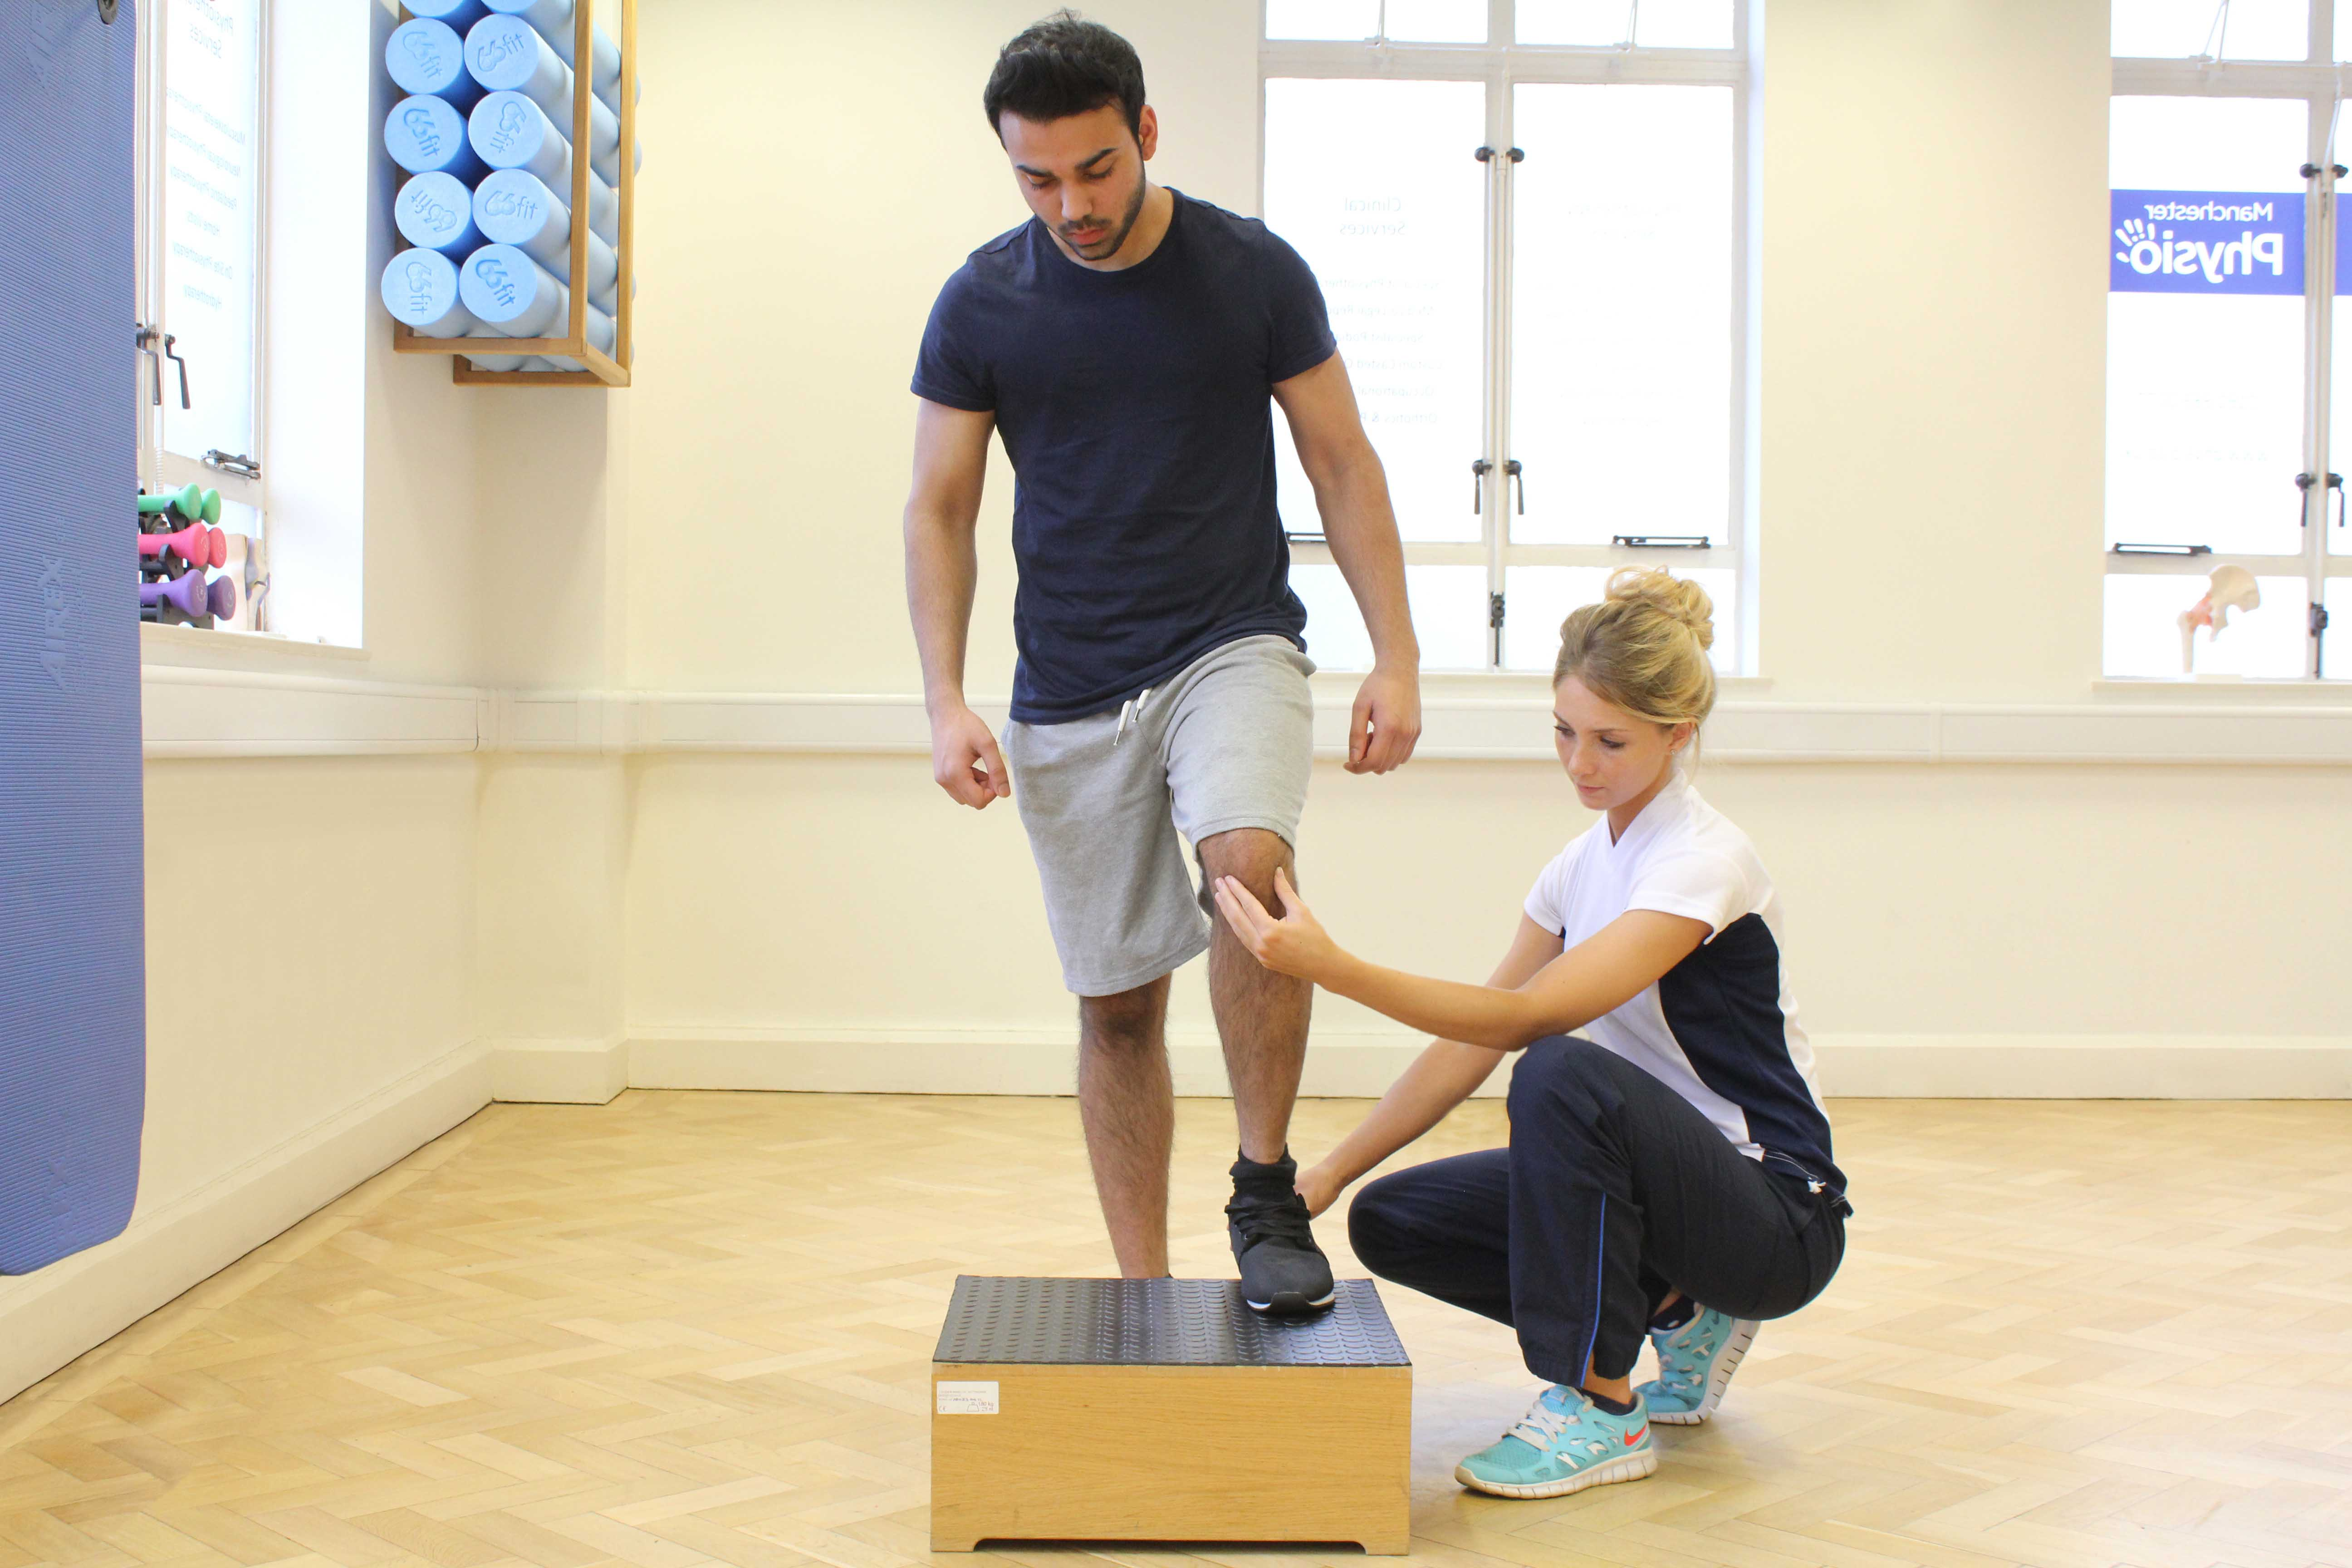 Specialist MSK therapist assisting step assent practice to reduce clients mobility limitations